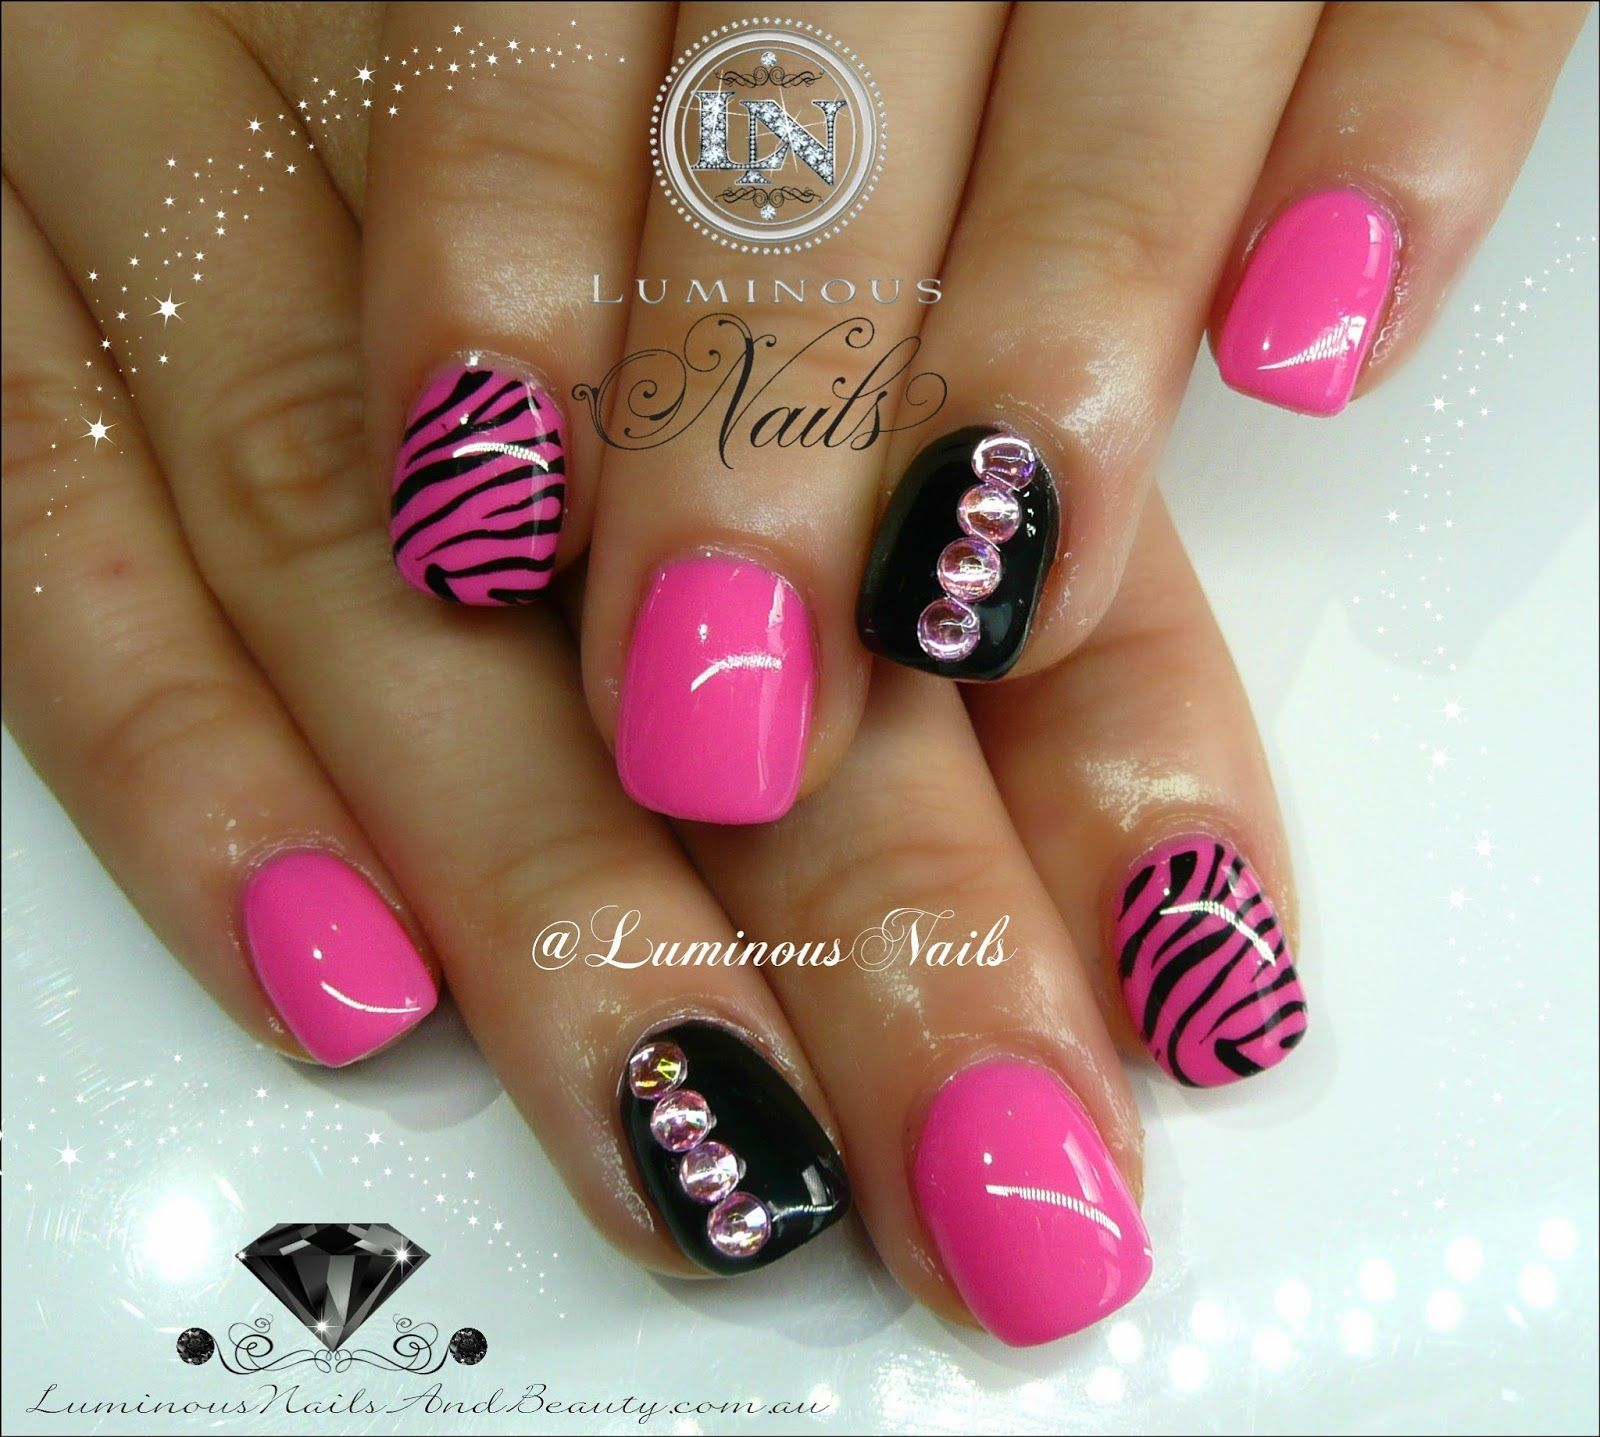 Luminous Nails: Cute Pink & Black Nails with Zebra Print ...